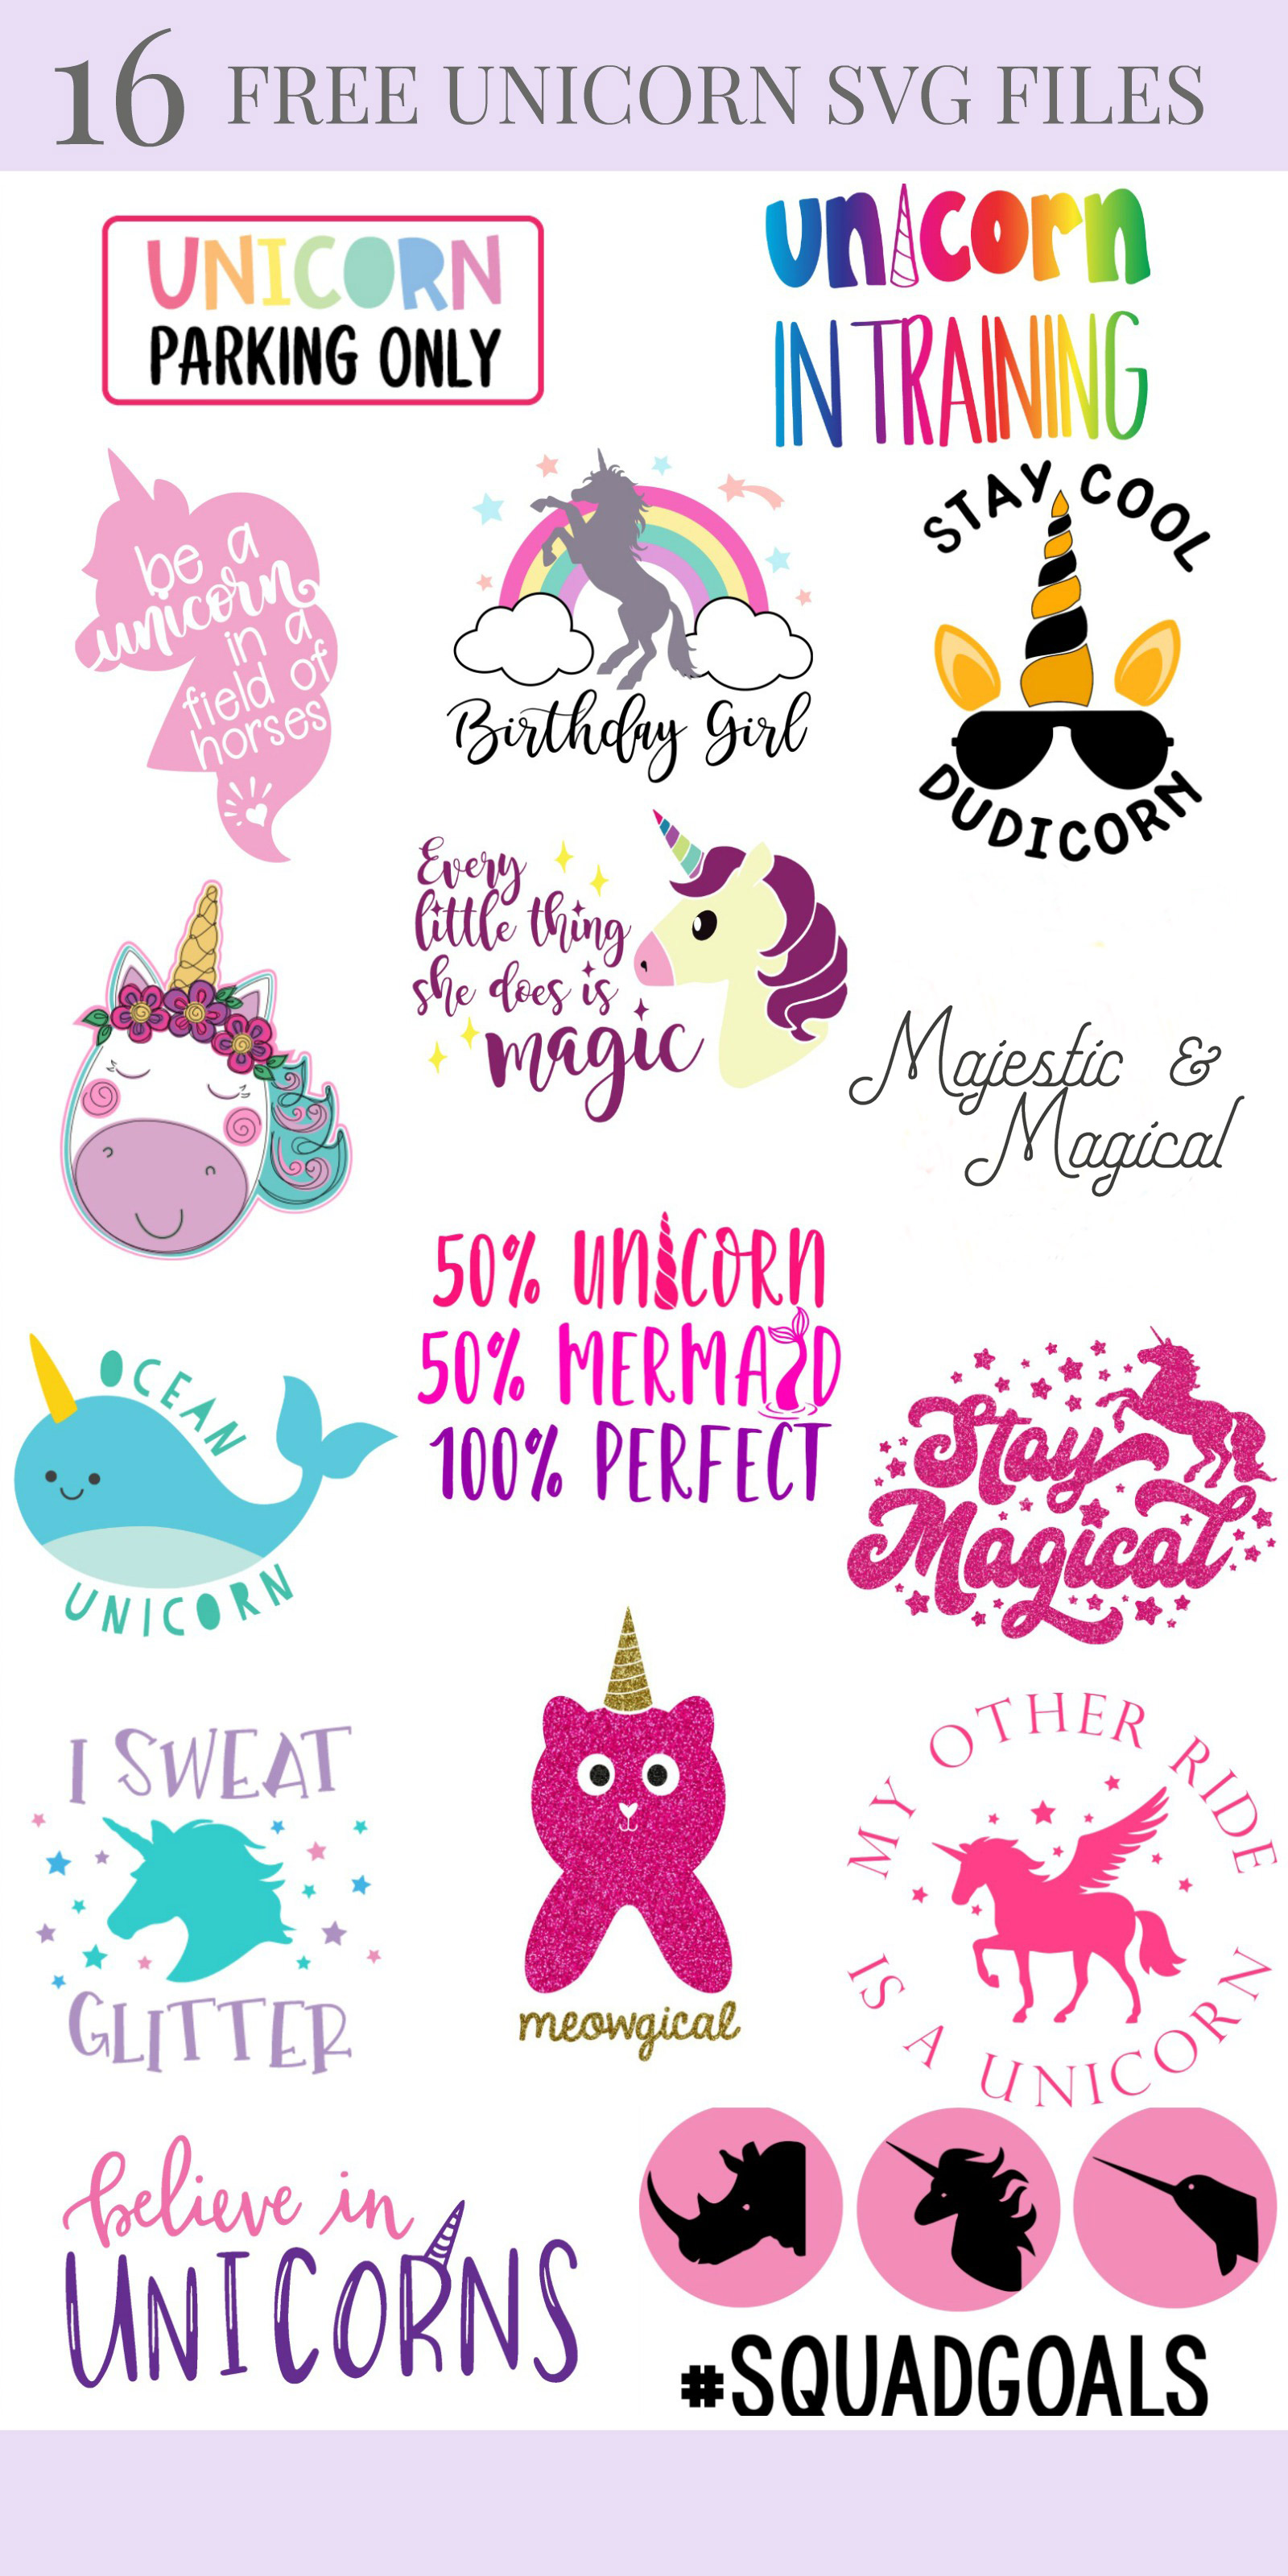 We're sharing 14 Free Unicorn SVG Cut including our very own Meowgical Caticorn cut file. So pull out those Cricuts and Silhouettes and craft up an easy project! Perfect for unicorn themed birthday parties, unicorn shirts and unicorn room decor! #Cricut #Silhouette #unicorn #CutFile #FreeSVG #SVG